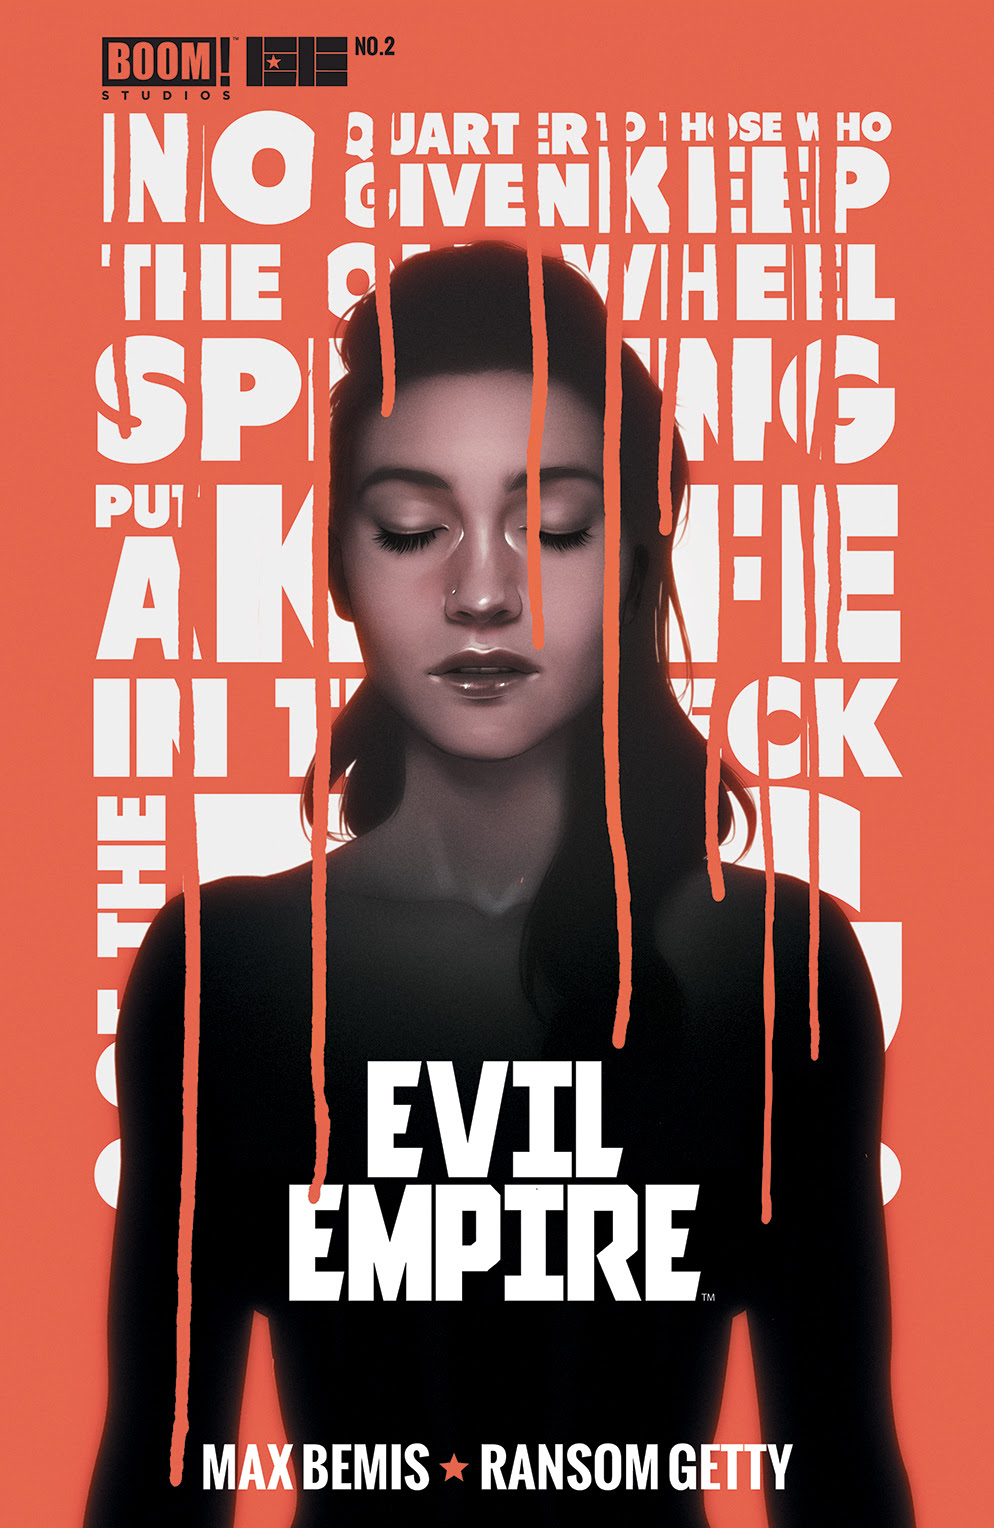 Evil Empire #2 Cover 2nd Print